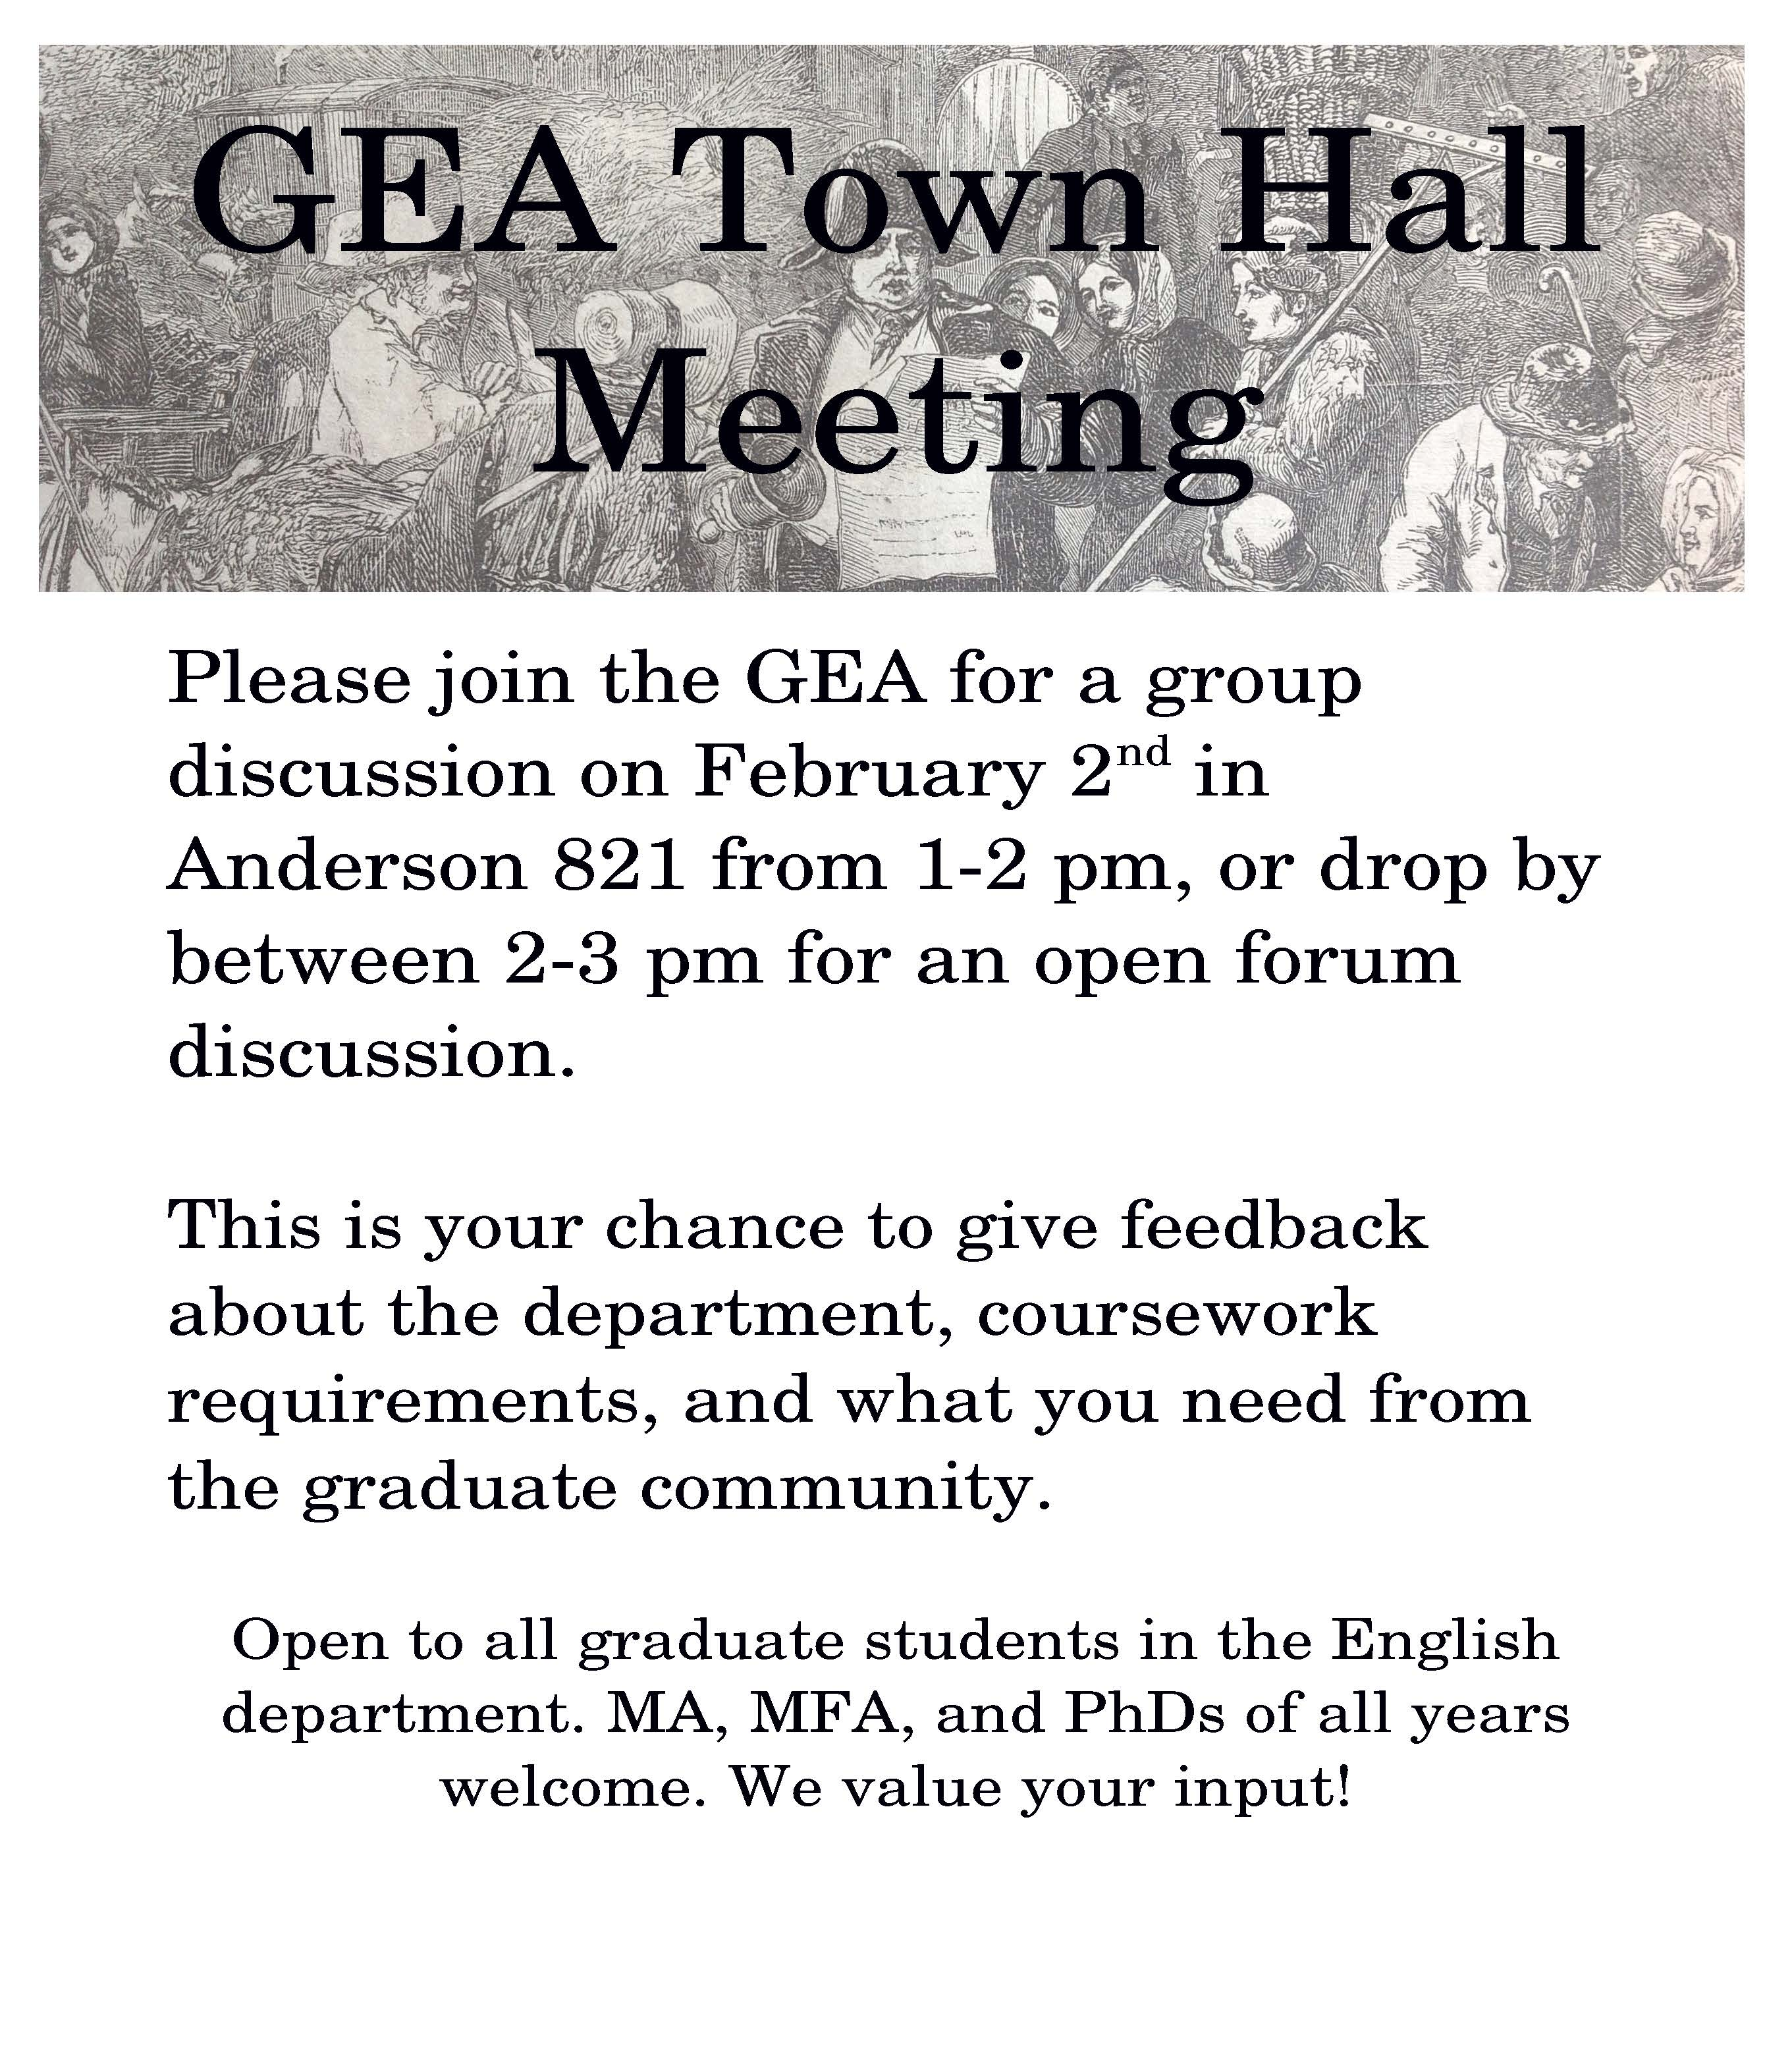 temple gea graduate english association at temple university gea town hall flier